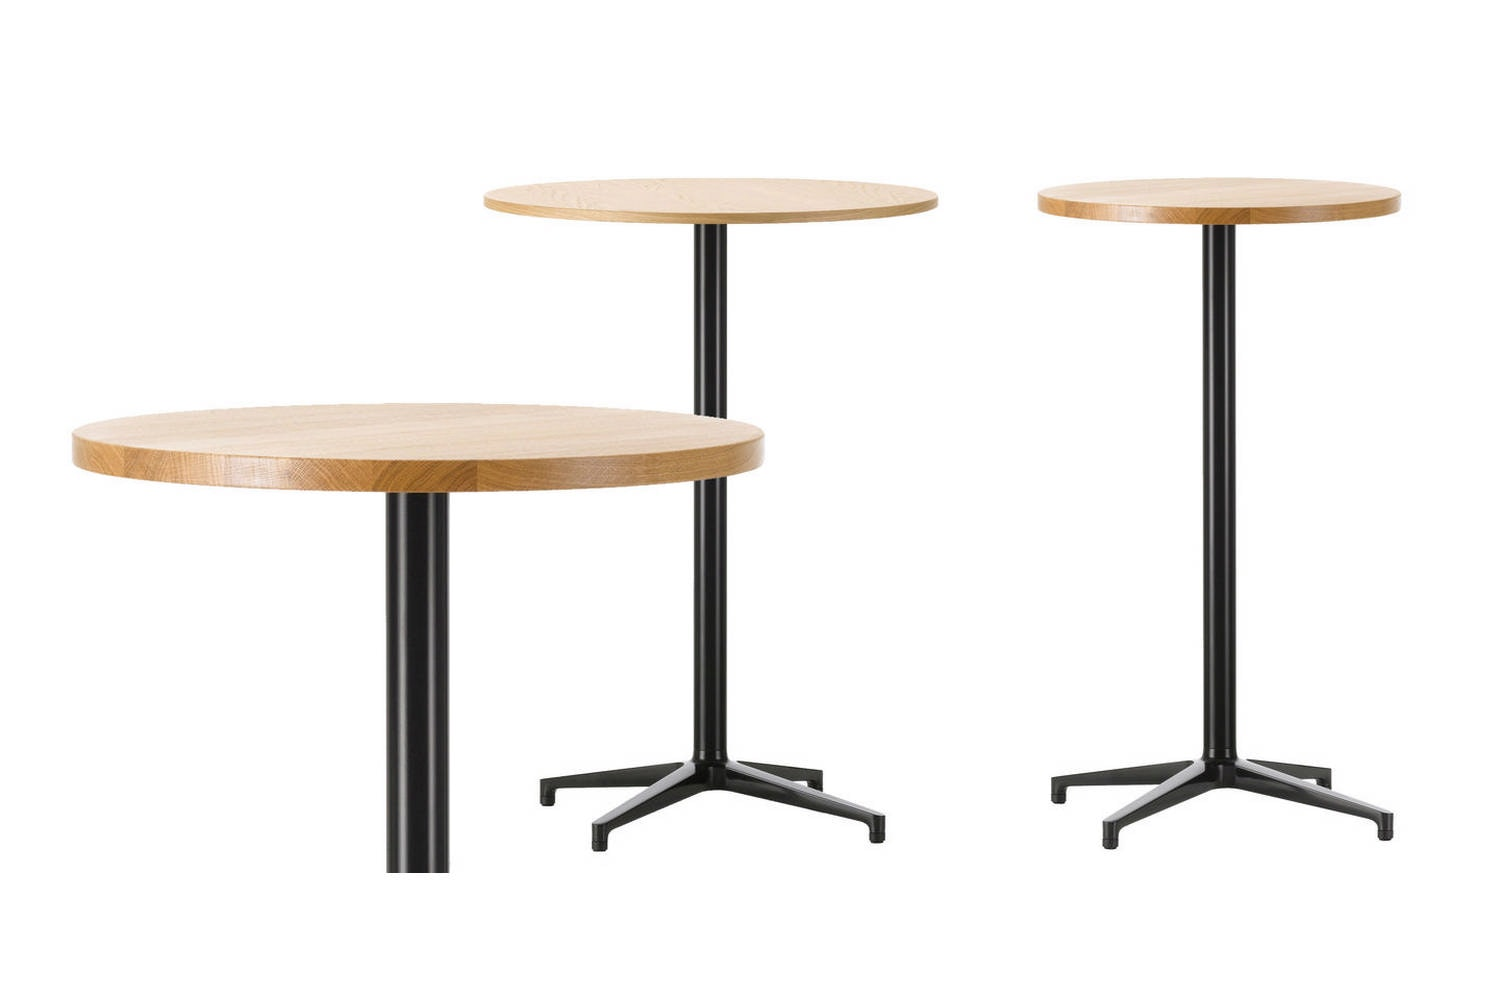 Bistro Stand-up Table by Ronan & Erwan Bouroullec for Vitra